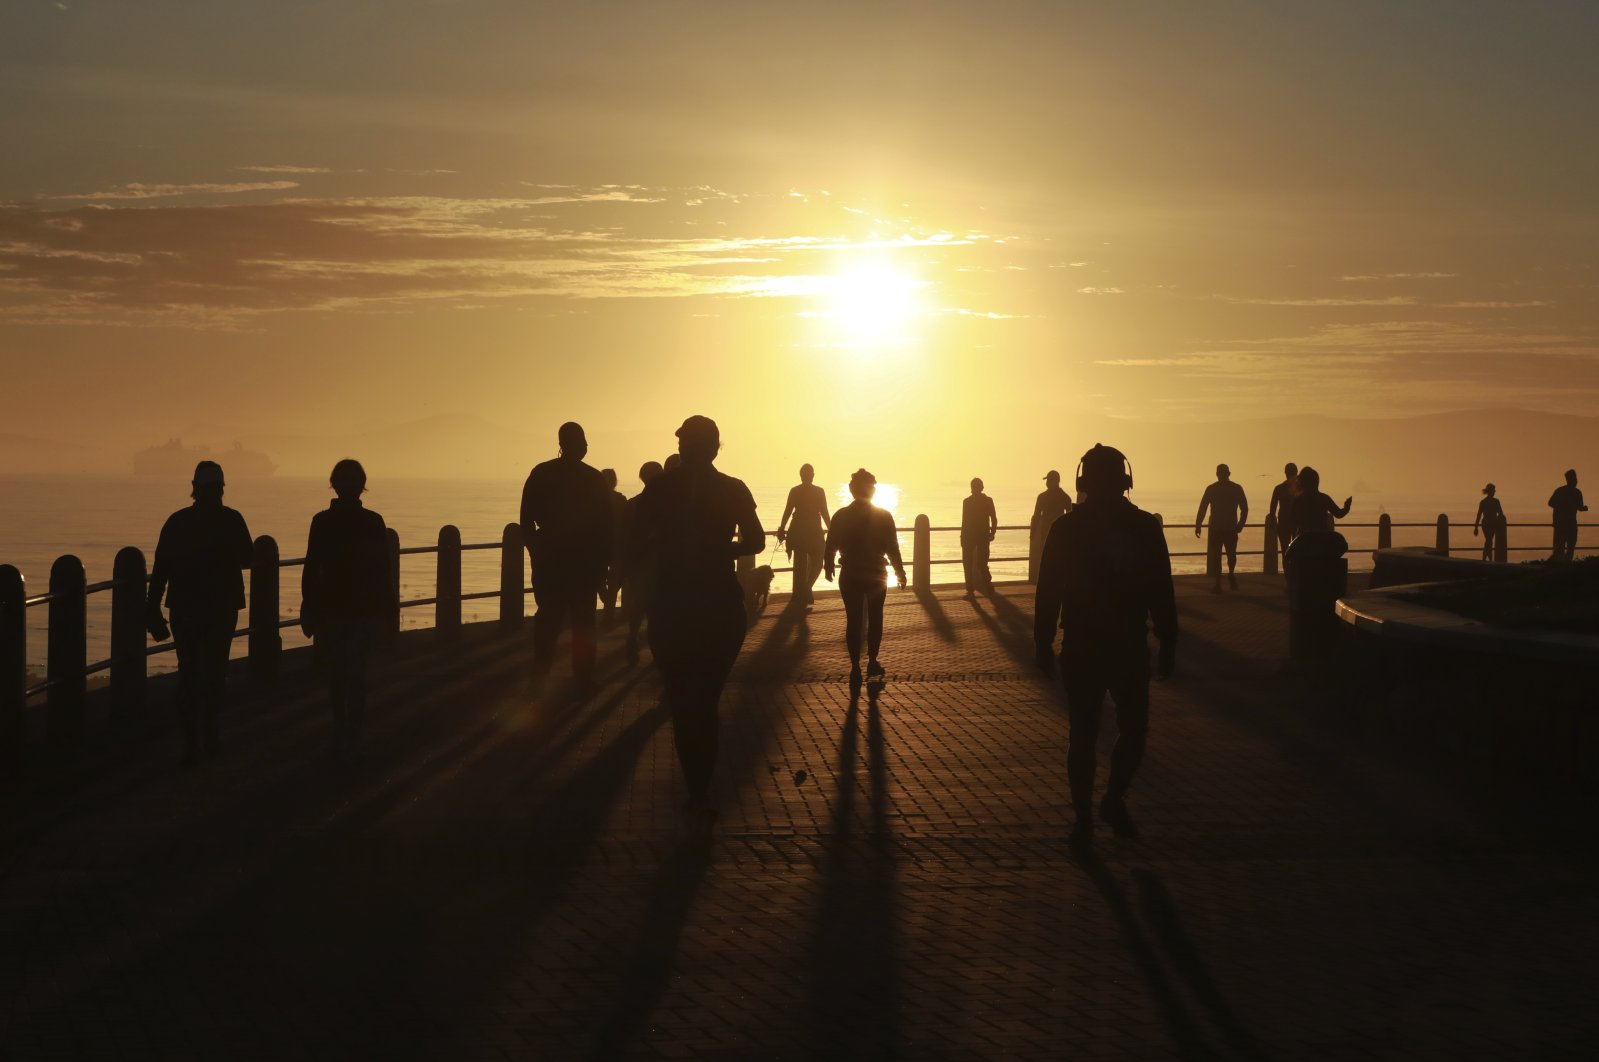 In this file photo taken Monday May 18, 2020, people exercise along the promenade at sunrise in Sea Point, Cape Town, South Africa, as the country marked day 53 of a strict government lockdown in a bid to prevent the spread of coronavirus. (AP Photo)